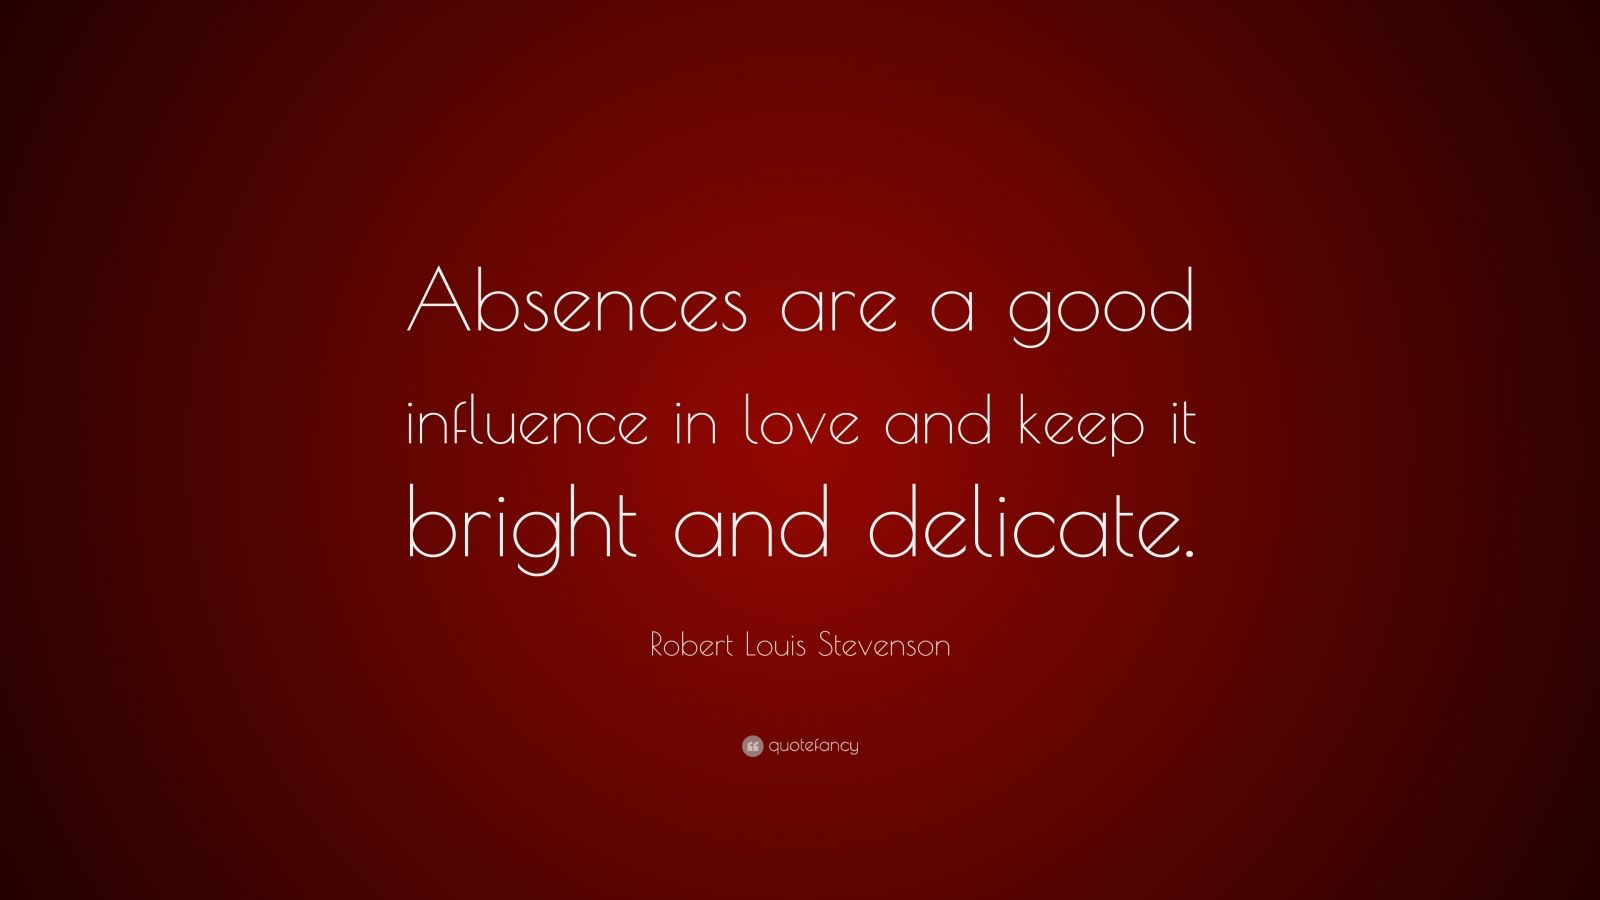 """Robert Louis Stevenson Quote: """"Absences are a good influence in love and keep it bright and delicate."""""""